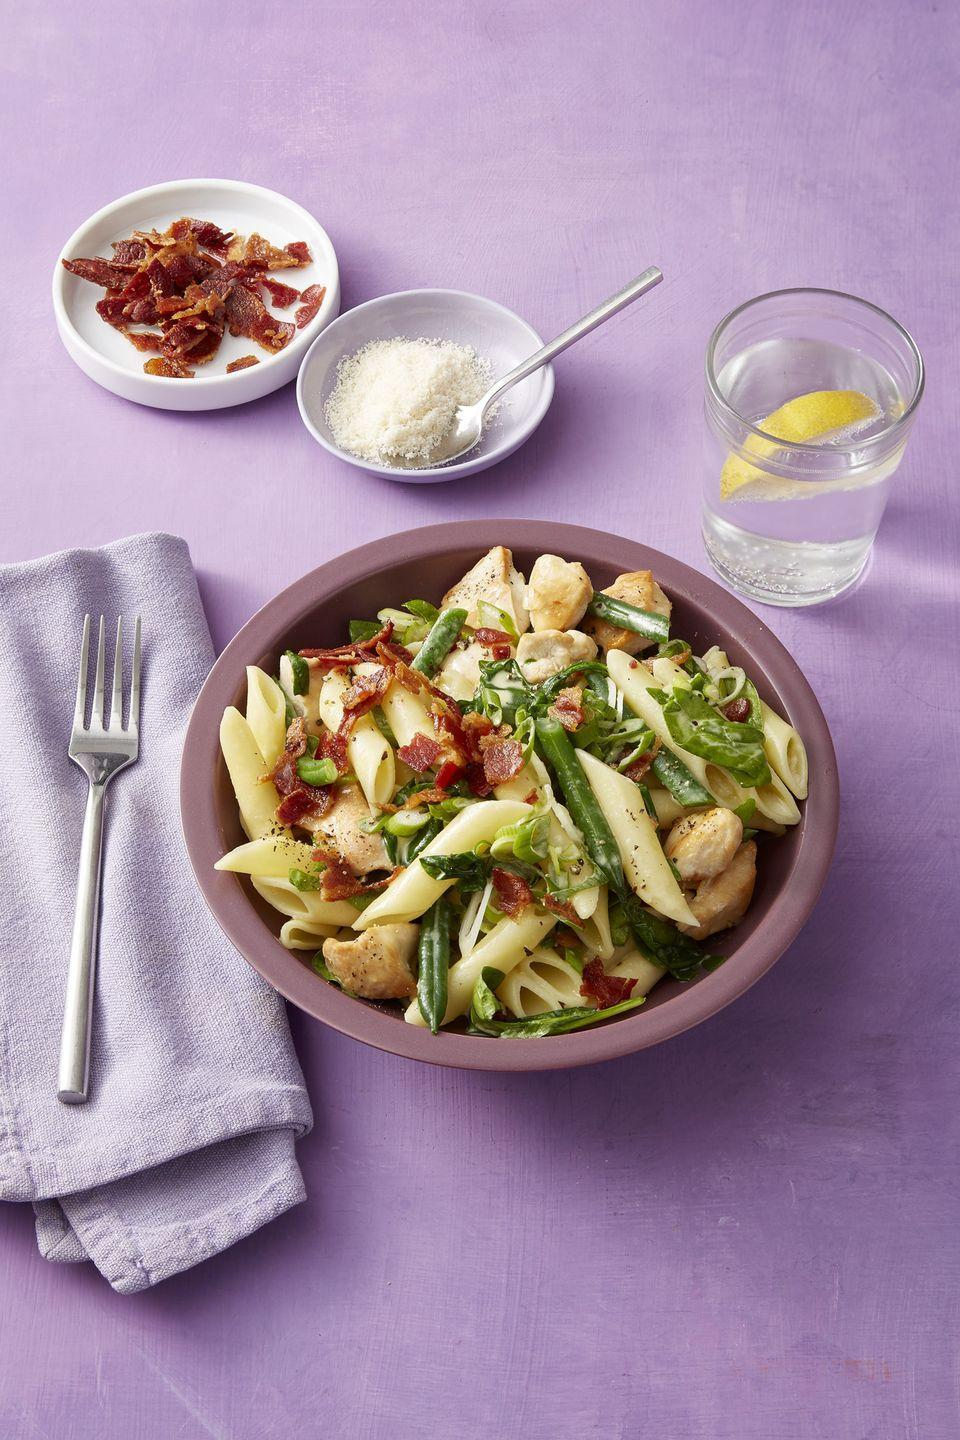 """<p>Who needs meatballs when you have bacon?</p><p><em><a href=""""https://www.womansday.com/food-recipes/food-drinks/a19133143/chicken-green-bean-and-bacon-pasta-recipe/"""" rel=""""nofollow noopener"""" target=""""_blank"""" data-ylk=""""slk:Get the Chicken, Green Bean, and Bacon Pasta recipe."""" class=""""link rapid-noclick-resp"""">Get the Chicken, Green Bean, and Bacon Pasta recipe.</a></em></p>"""